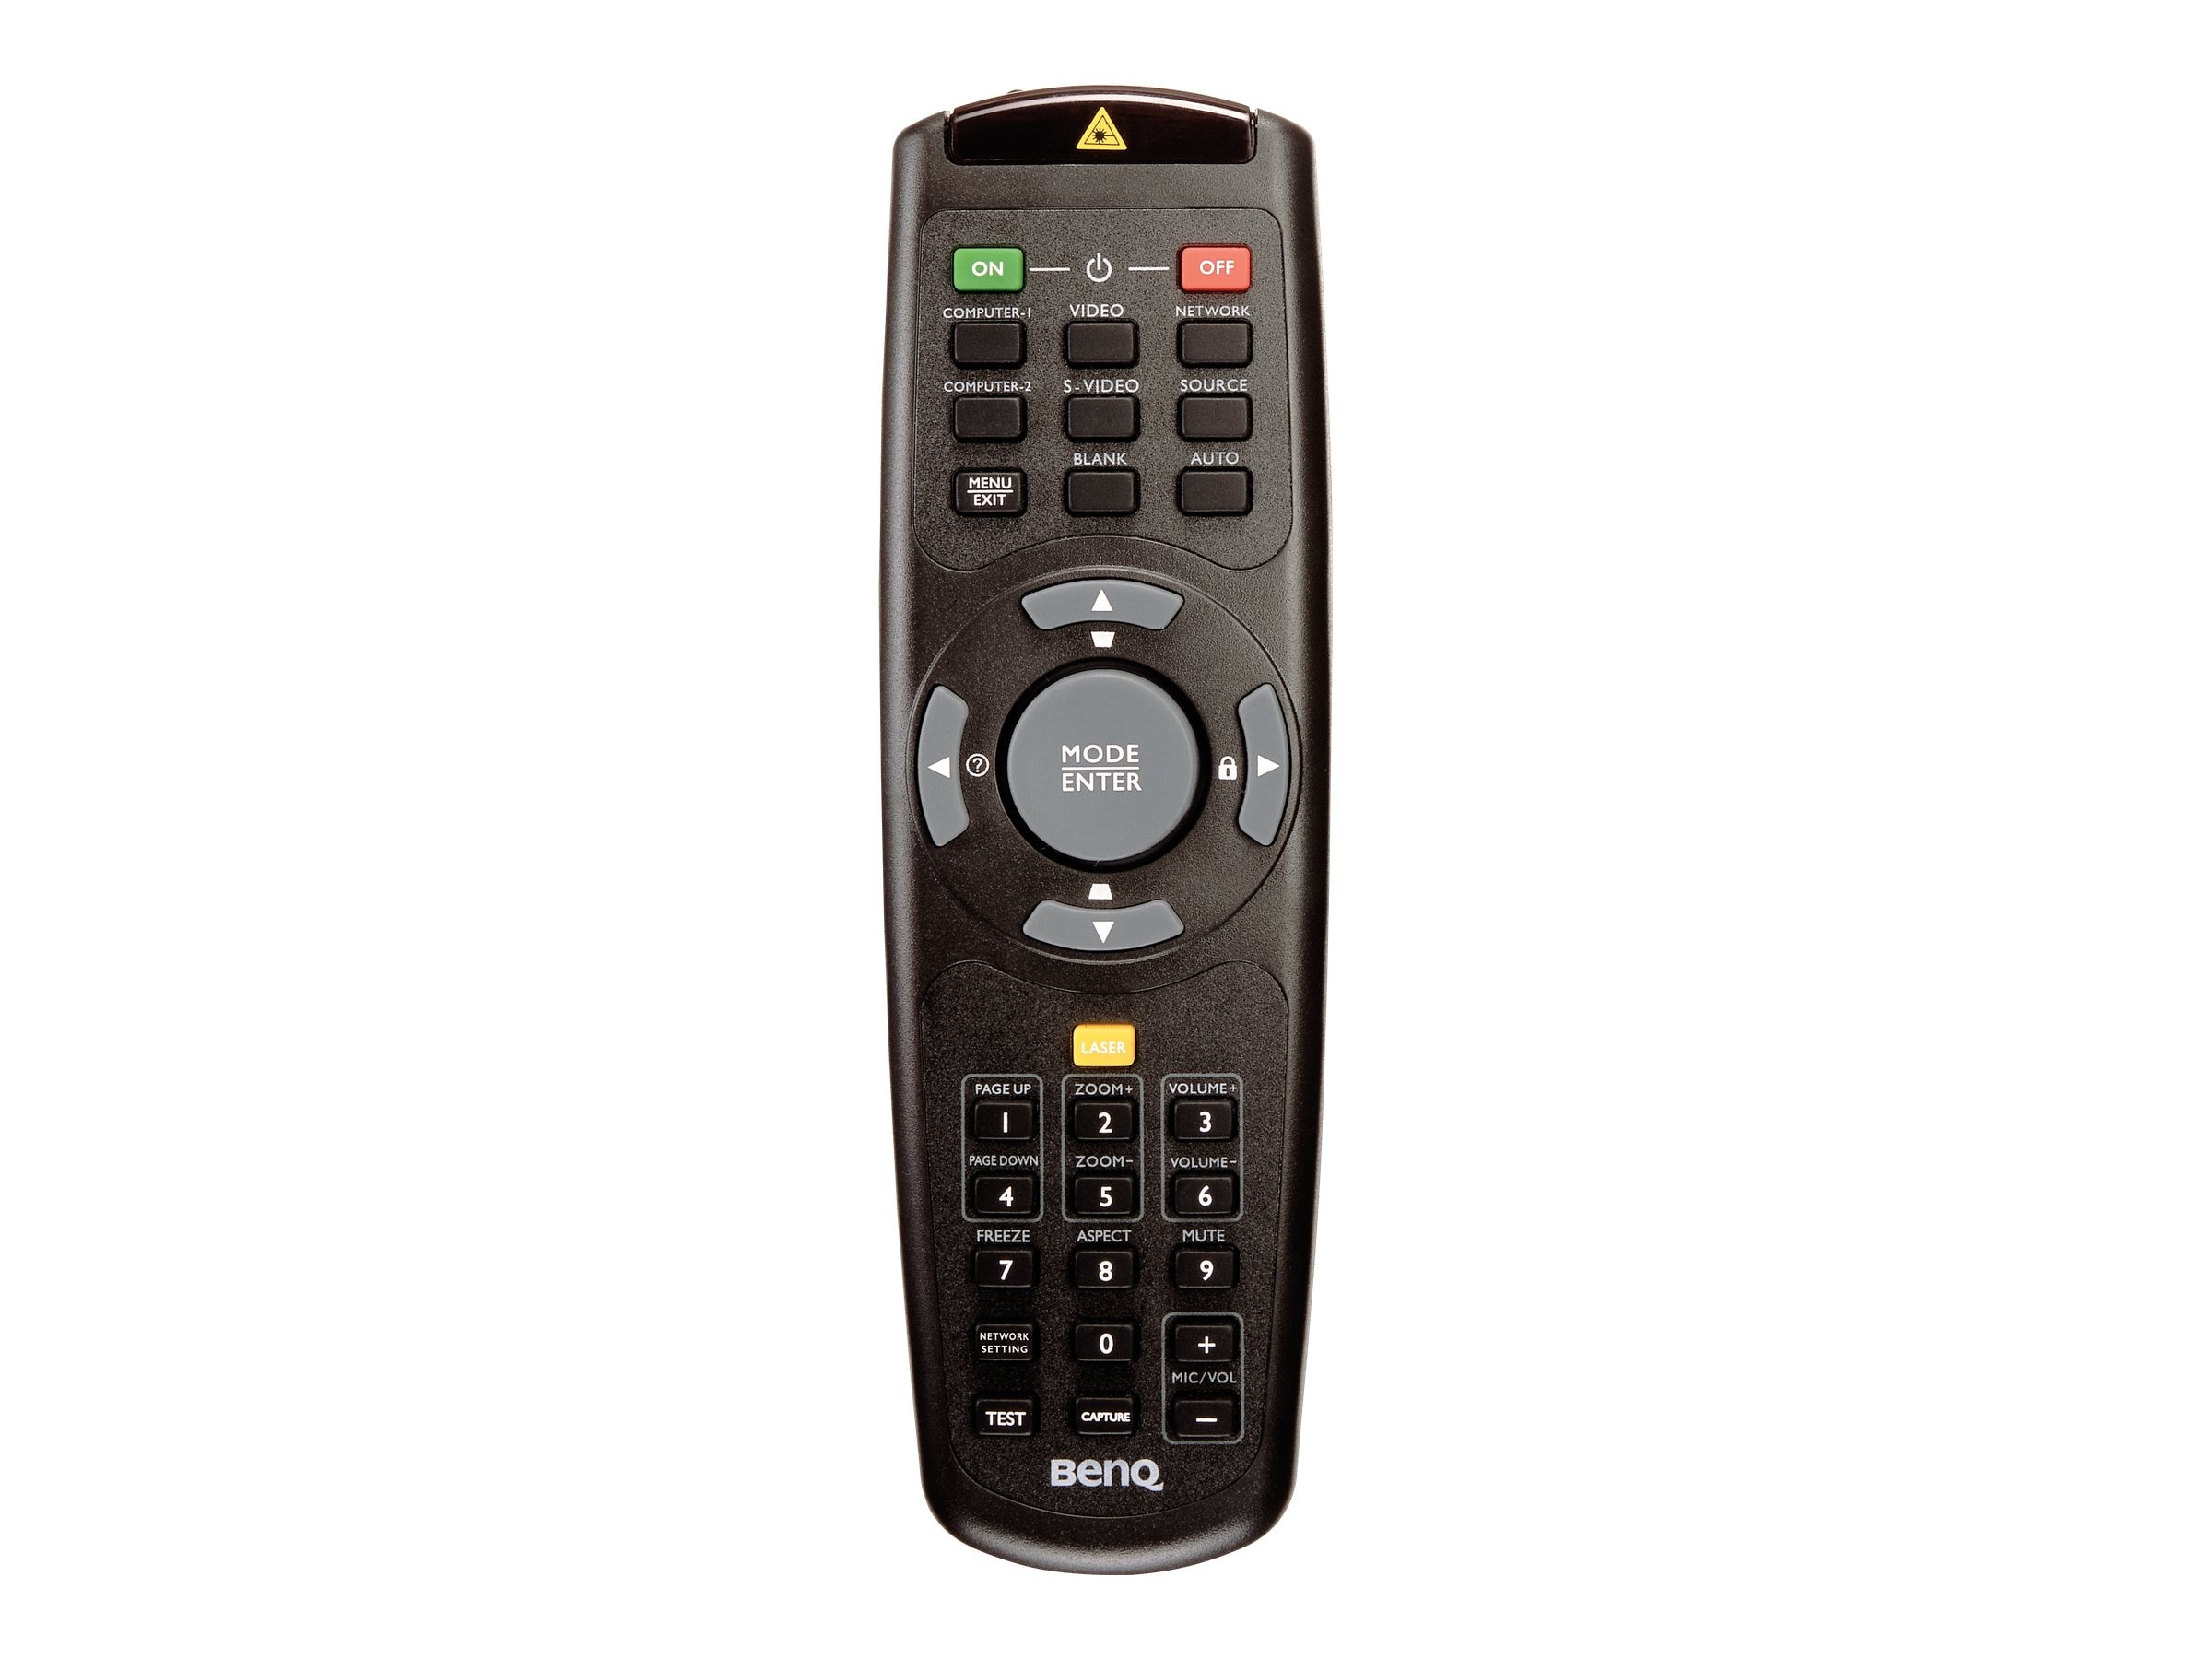 Benq Replacement Standard Remote Control for SH910, 5J.J4J06.001, 14002816, Projector Accessories